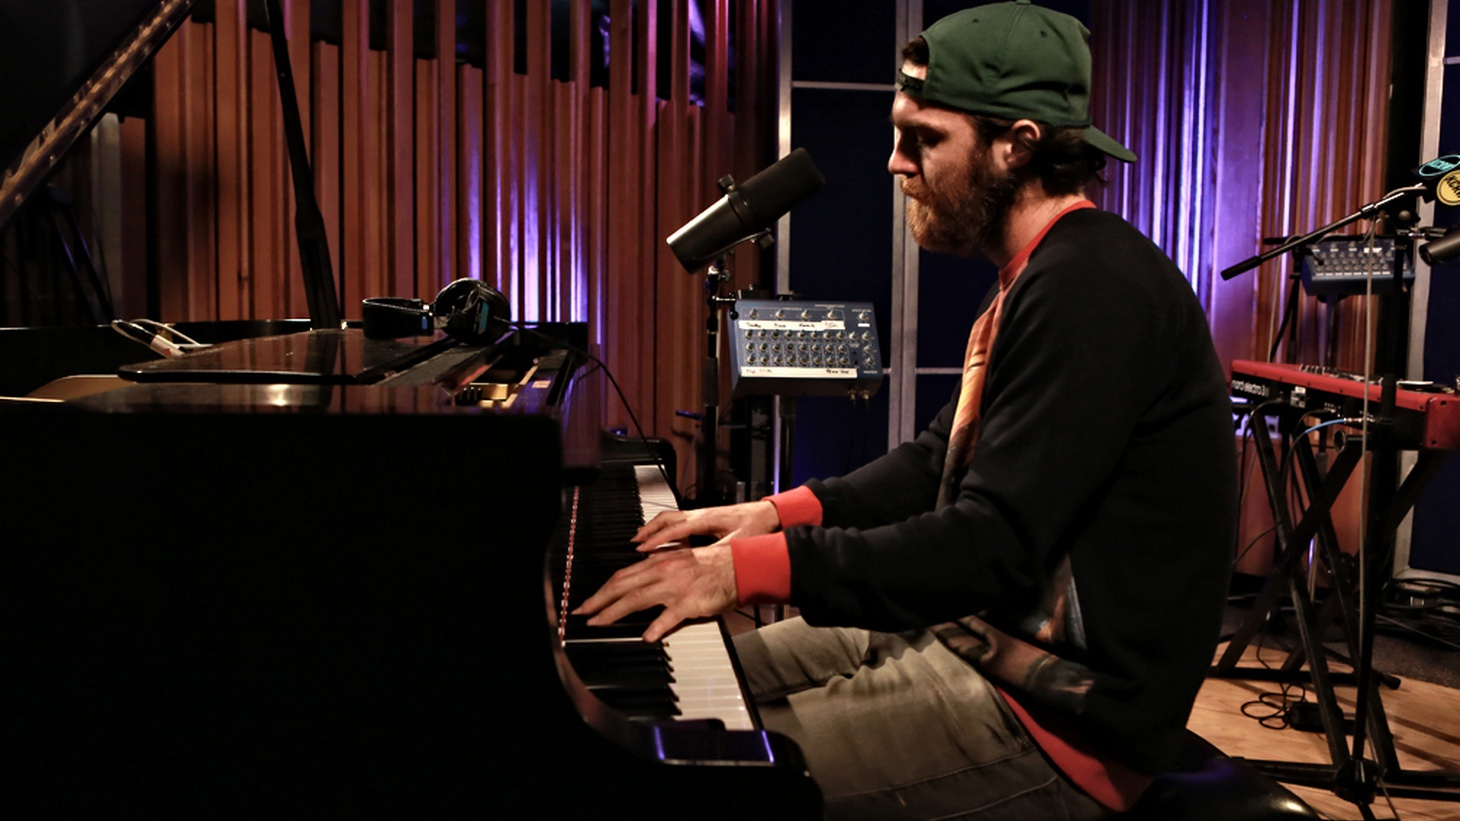 This special episode of the Morning Becomes Eclectic Podcast features two full-length sessions from a pair of young artists that we're really excited about here at KCRW.